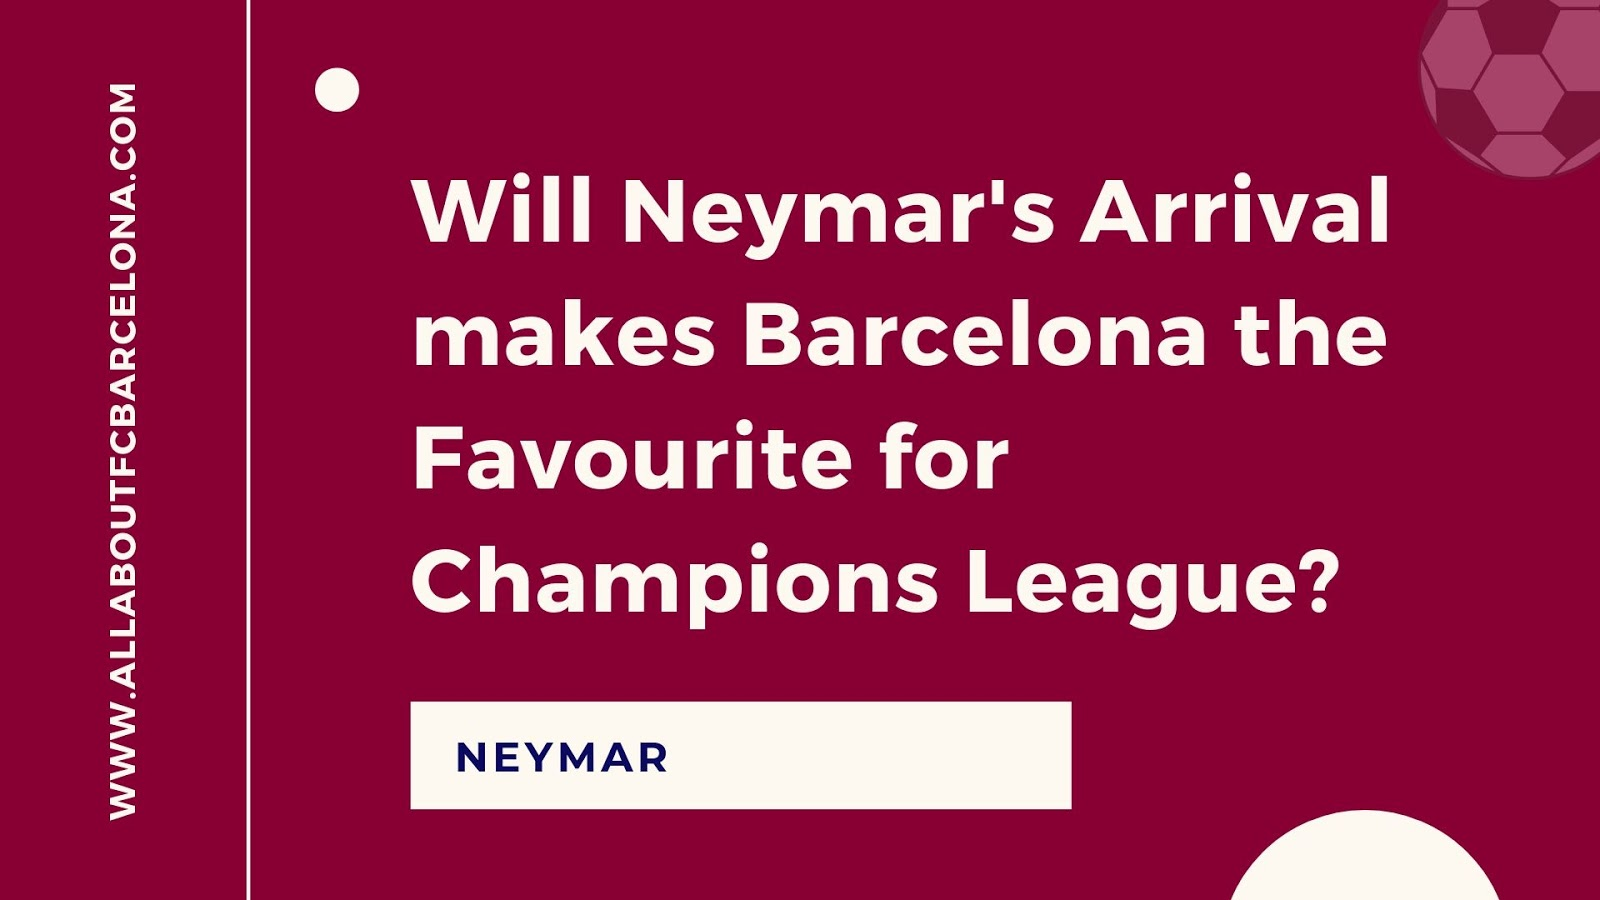 Will Neymar's Arrival makes Barcelona the Favourite for Champions League?